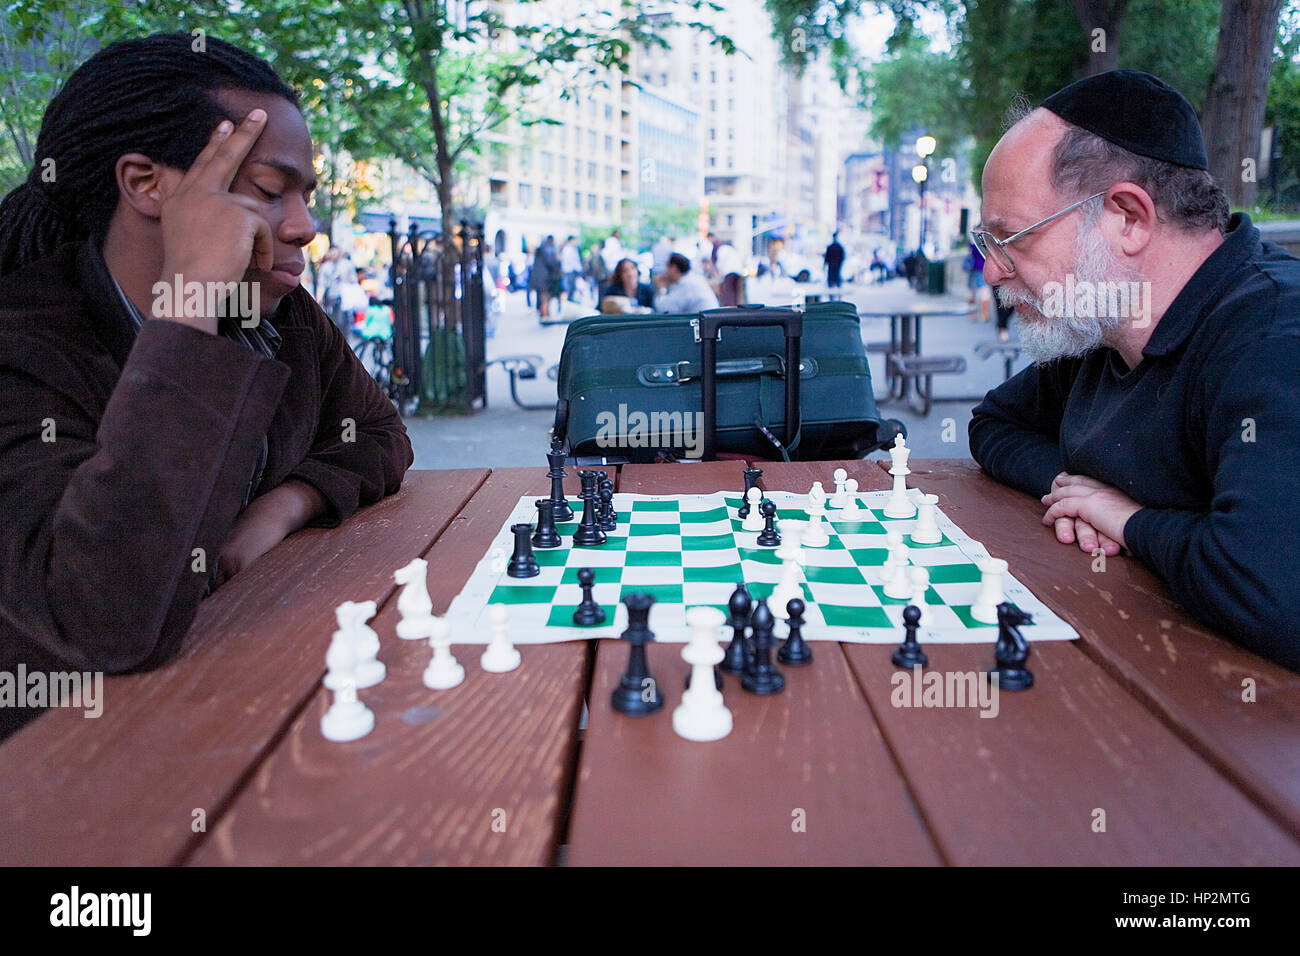 Union Square. Playing chess, Multiculturalism ,New York City, USA - Stock Image